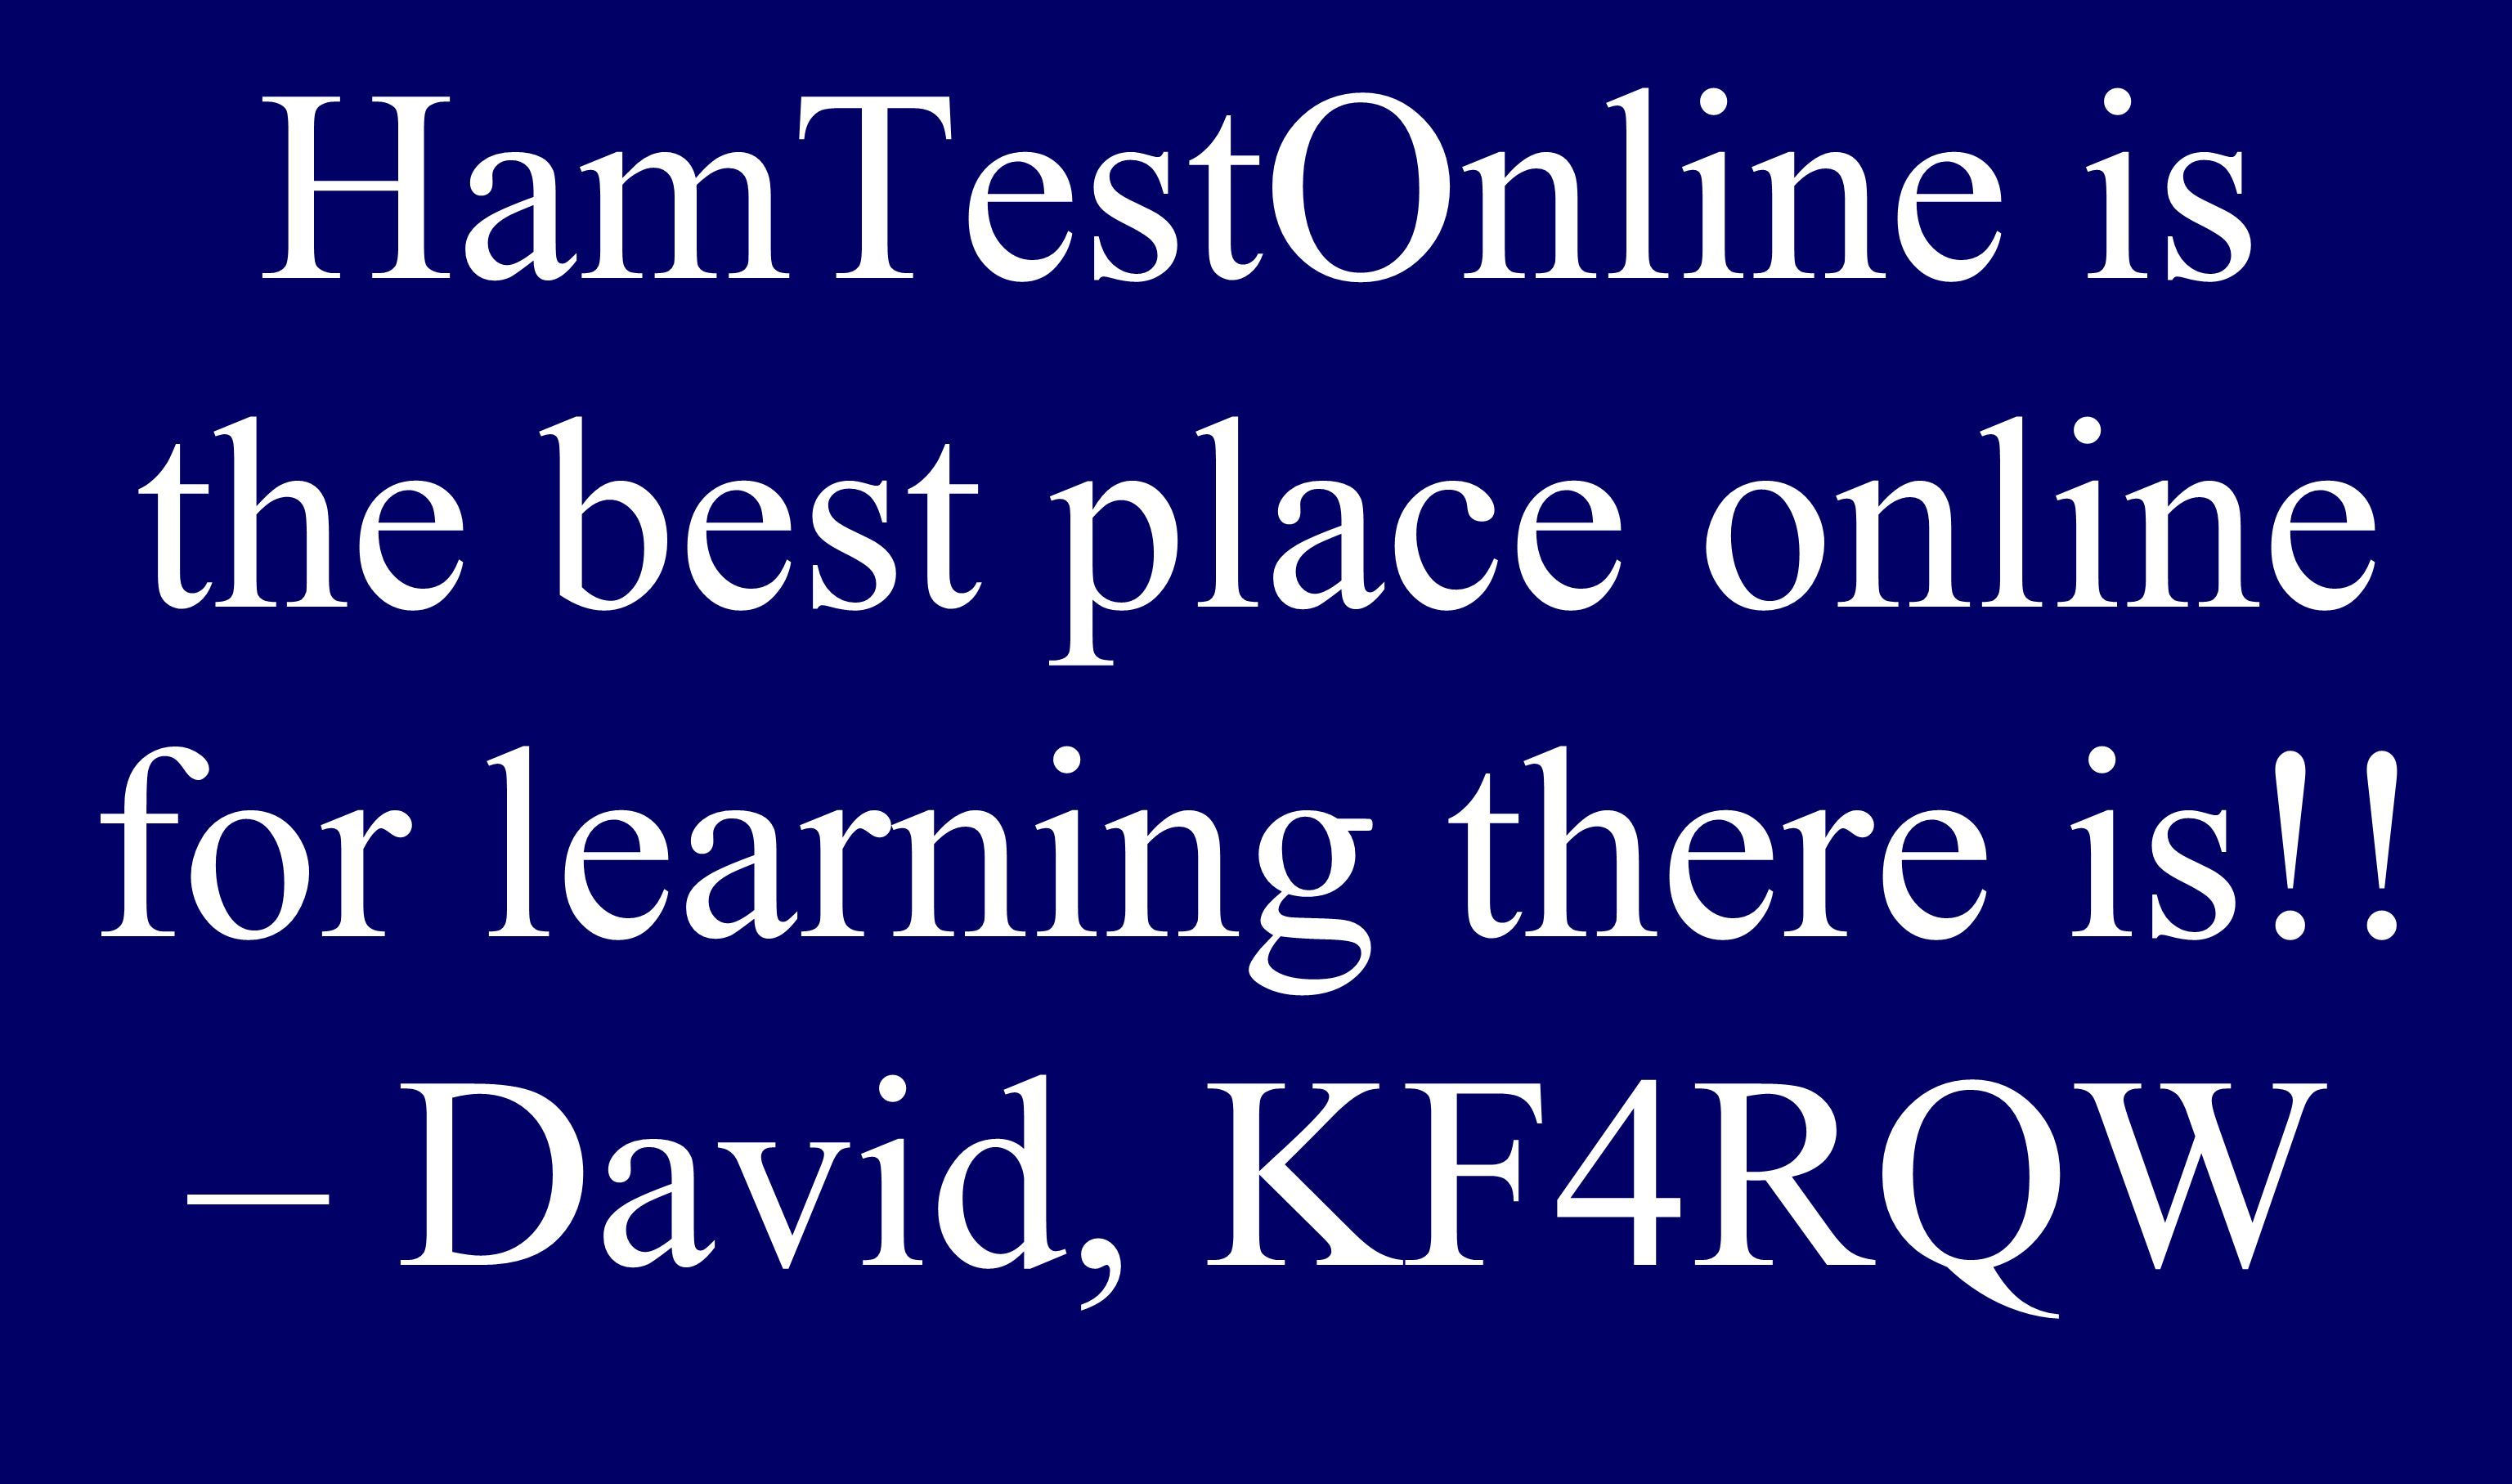 Senior HamTestOnline is the best place online for learning there is!! – David, KF4RQW